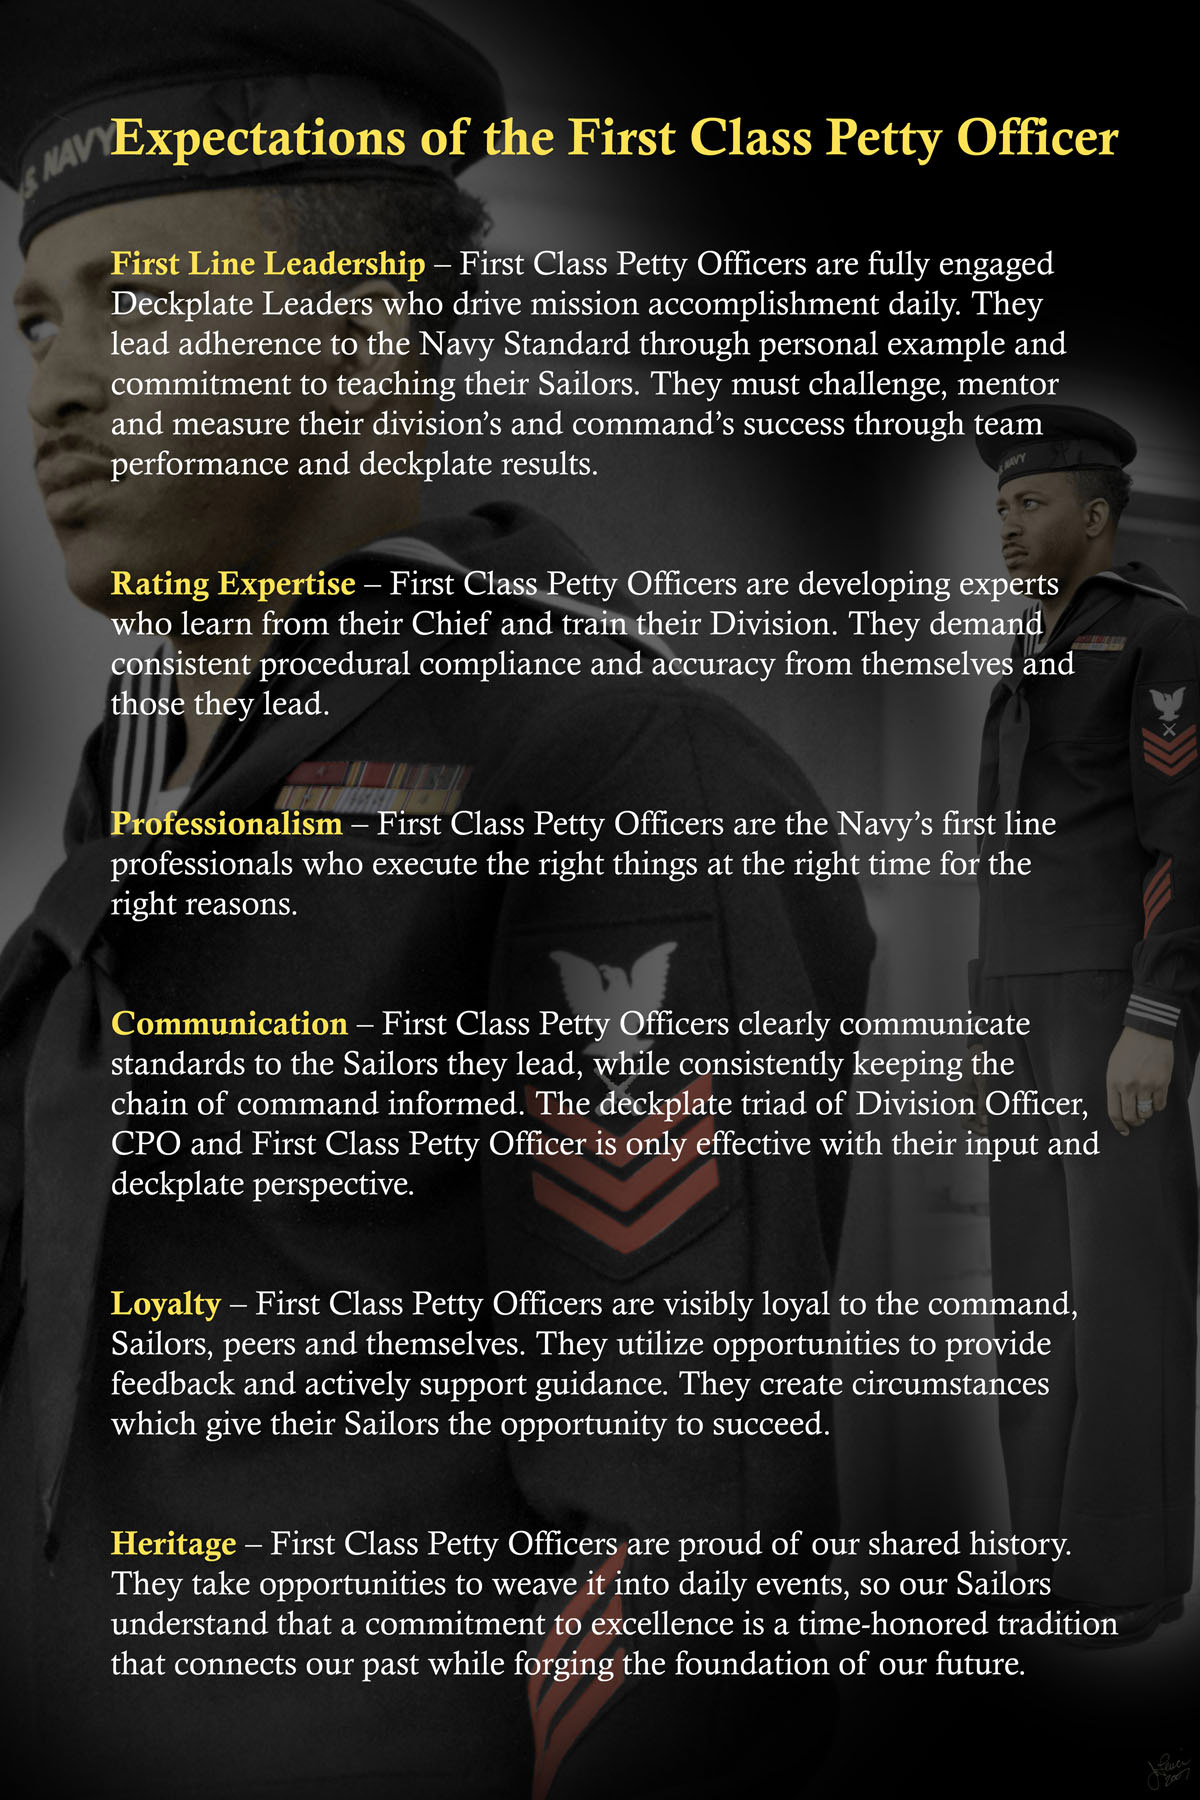 Expectations Of The First Class Petty Officer